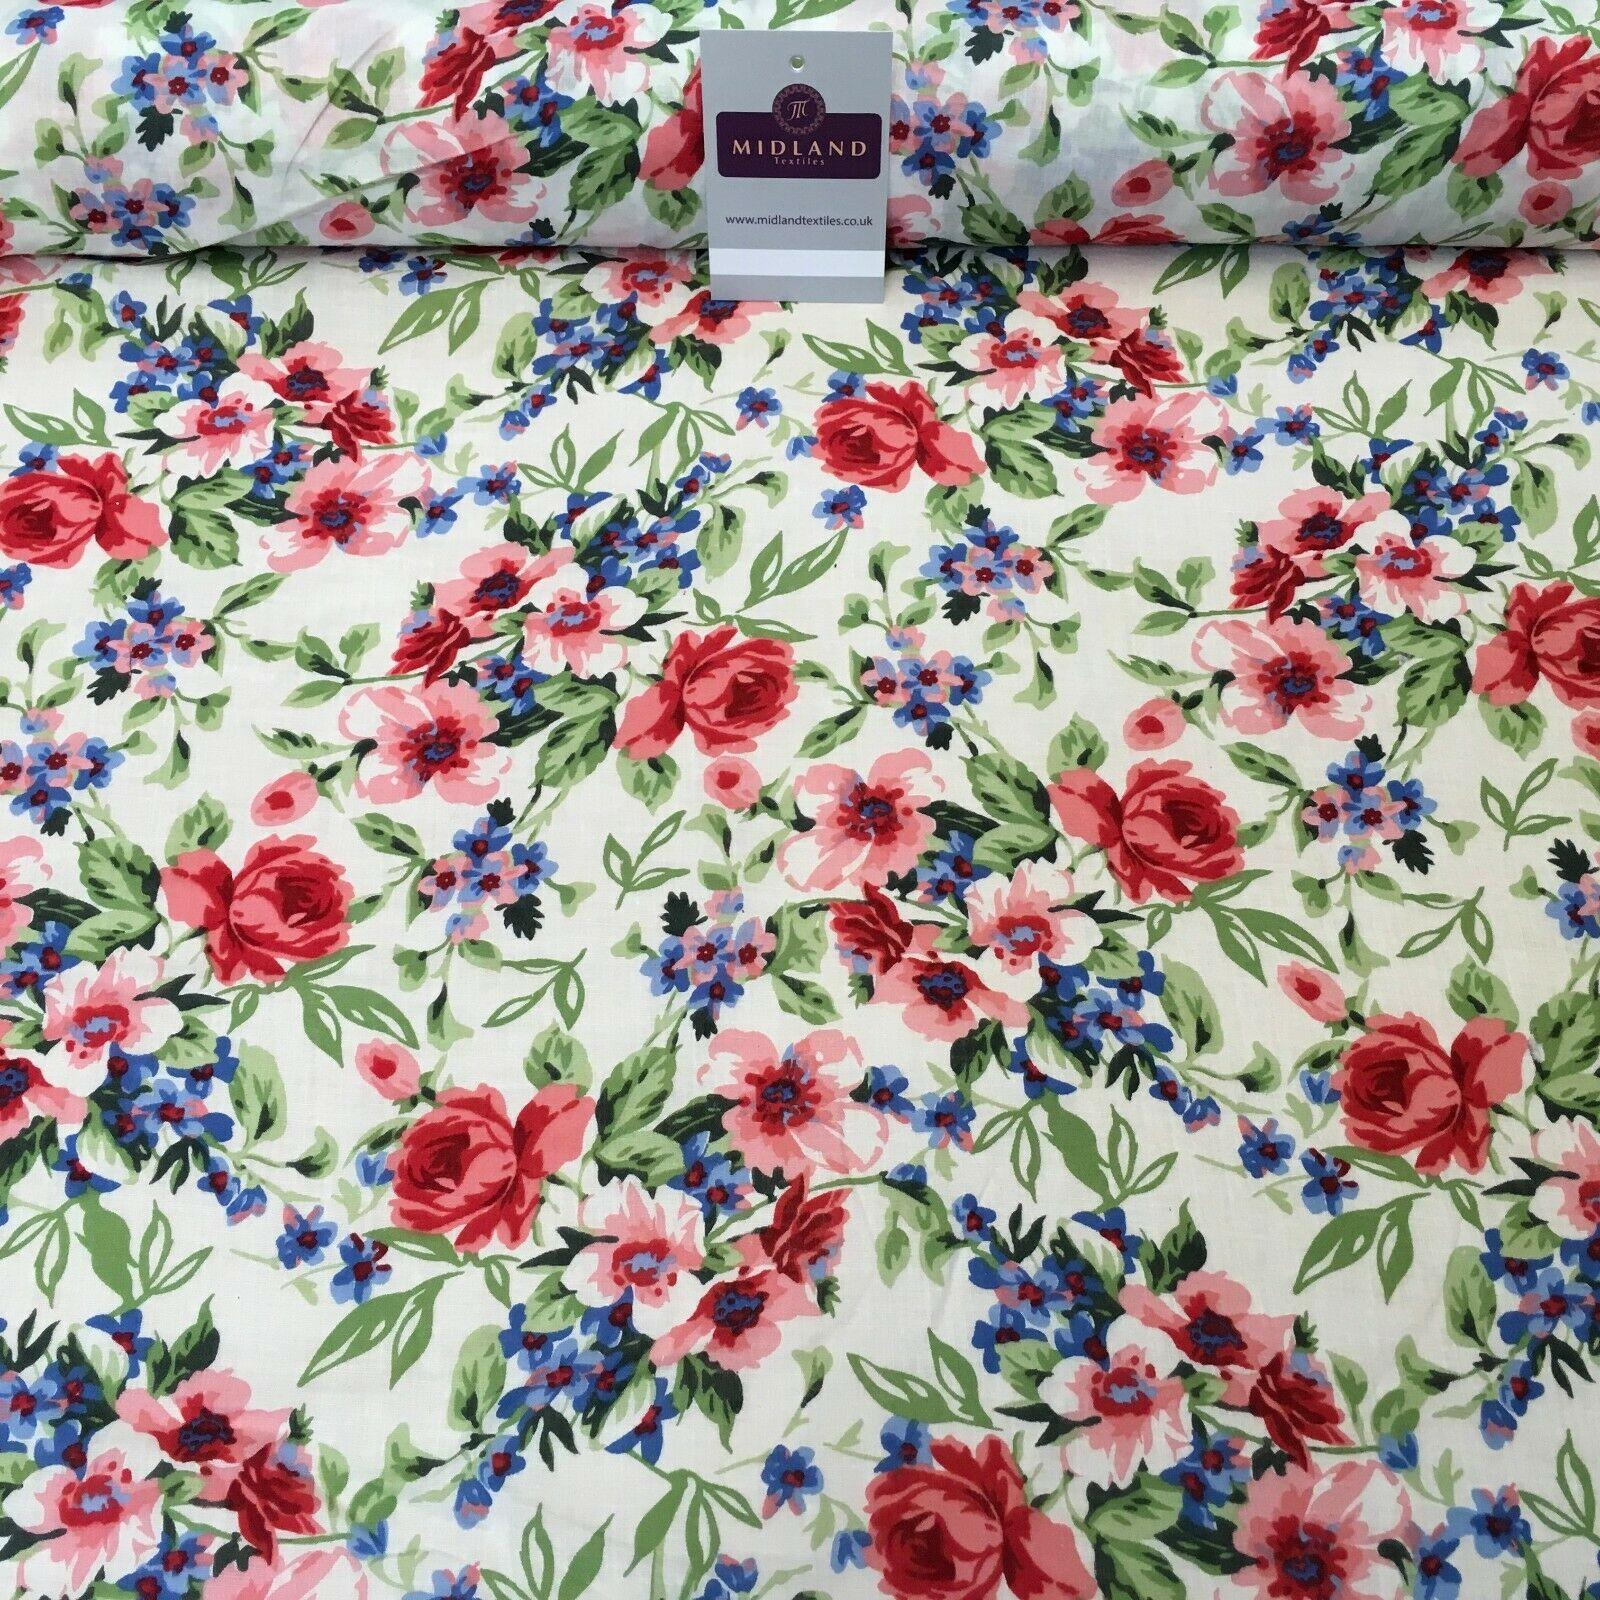 Ivory Floral Cotton Printed Lawn Dress Fabric 150 cm Wide M145 -74 Mtex